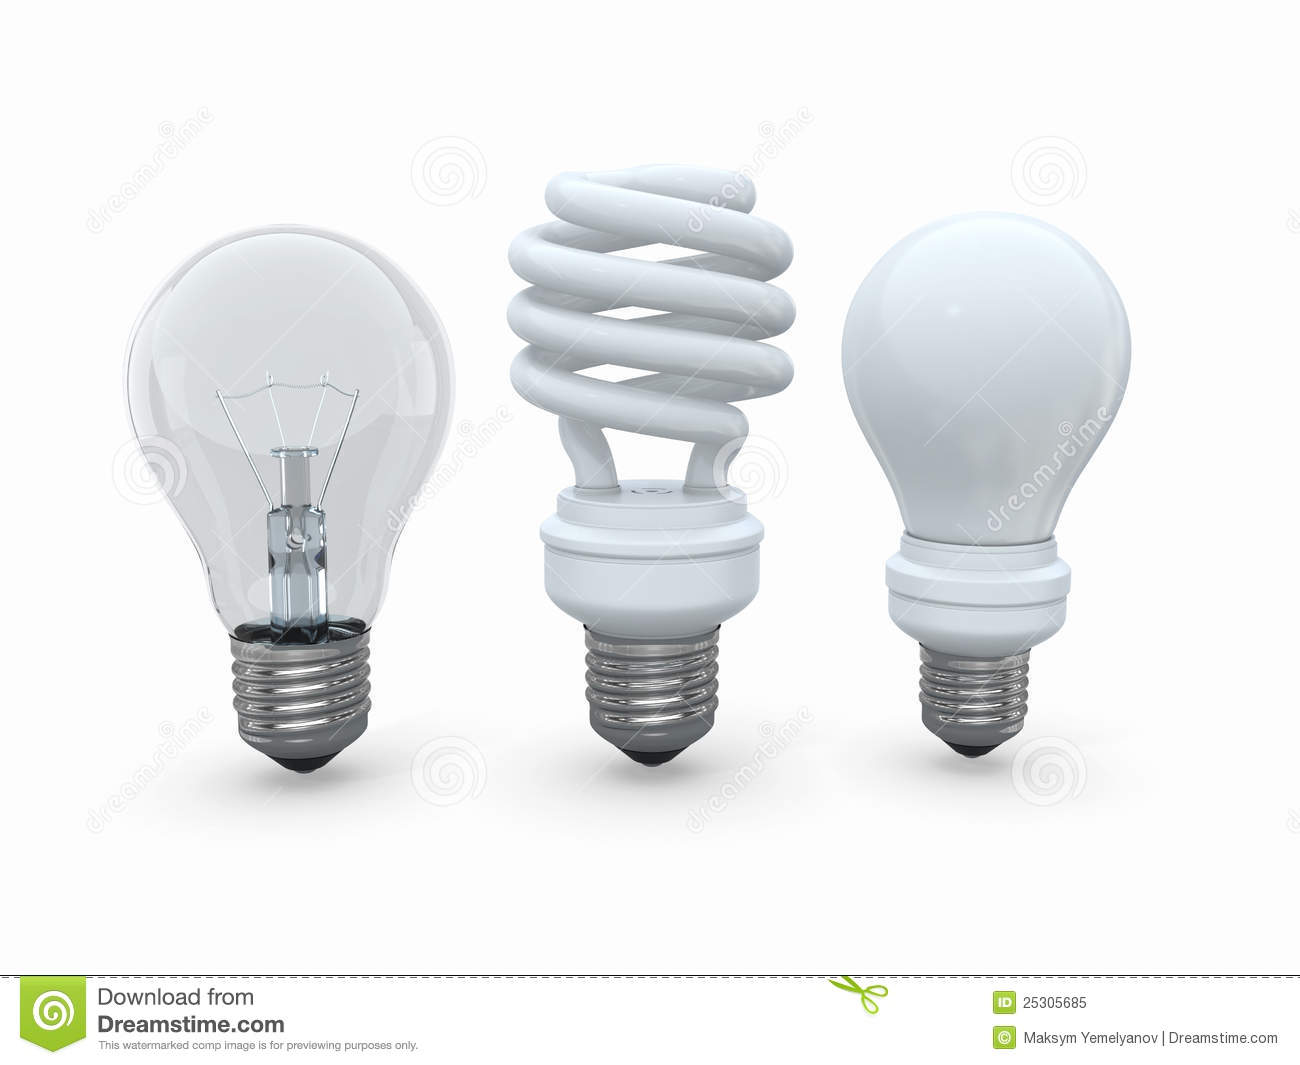 Three types of lamp bulbs on white background royalty free stock photo image 25305685 Lamp bulb types